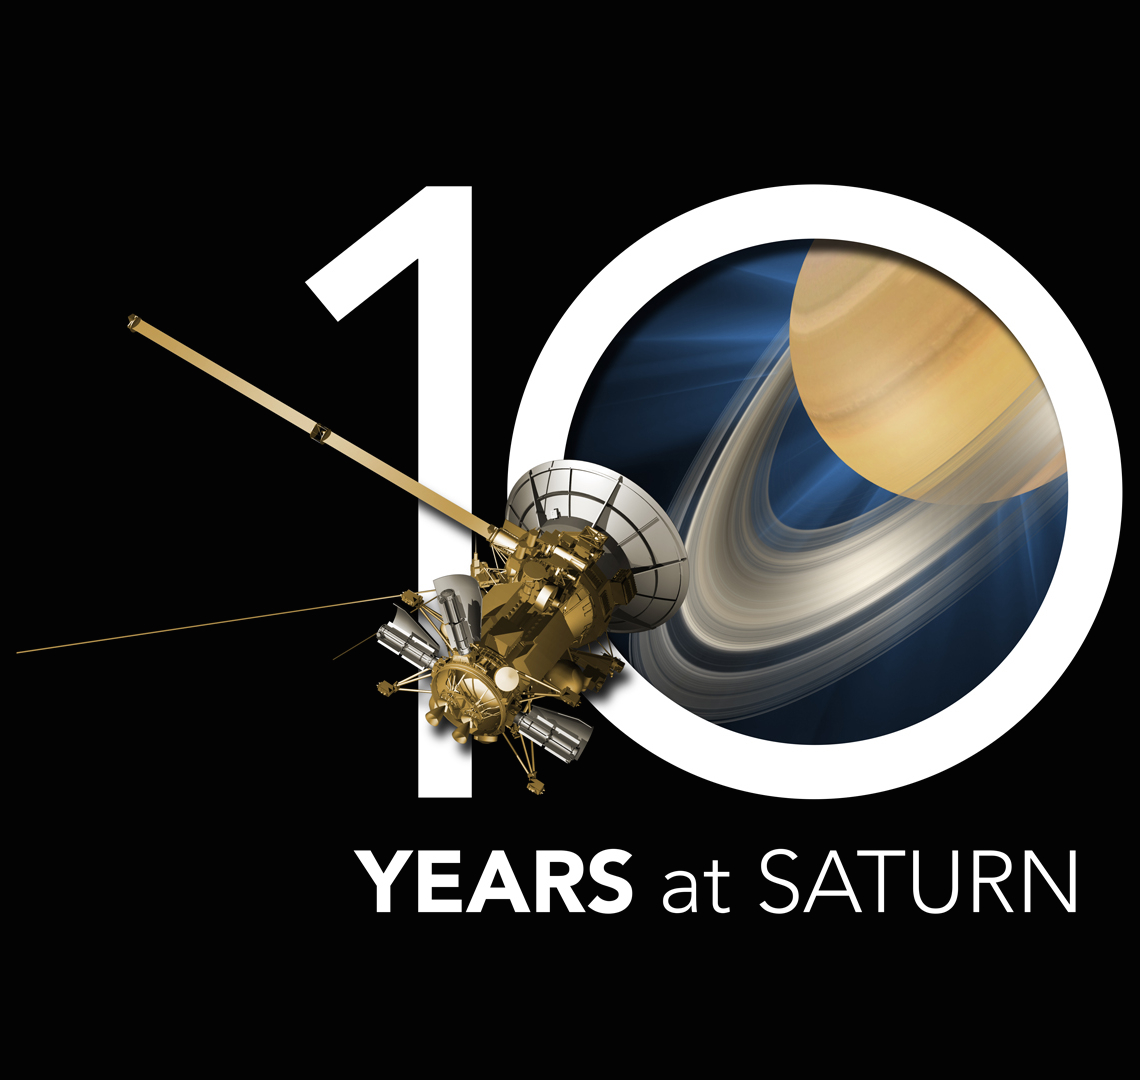 Cassini - 10 YEARS at SATURN; Quelle: NASA/JPL-Caltech